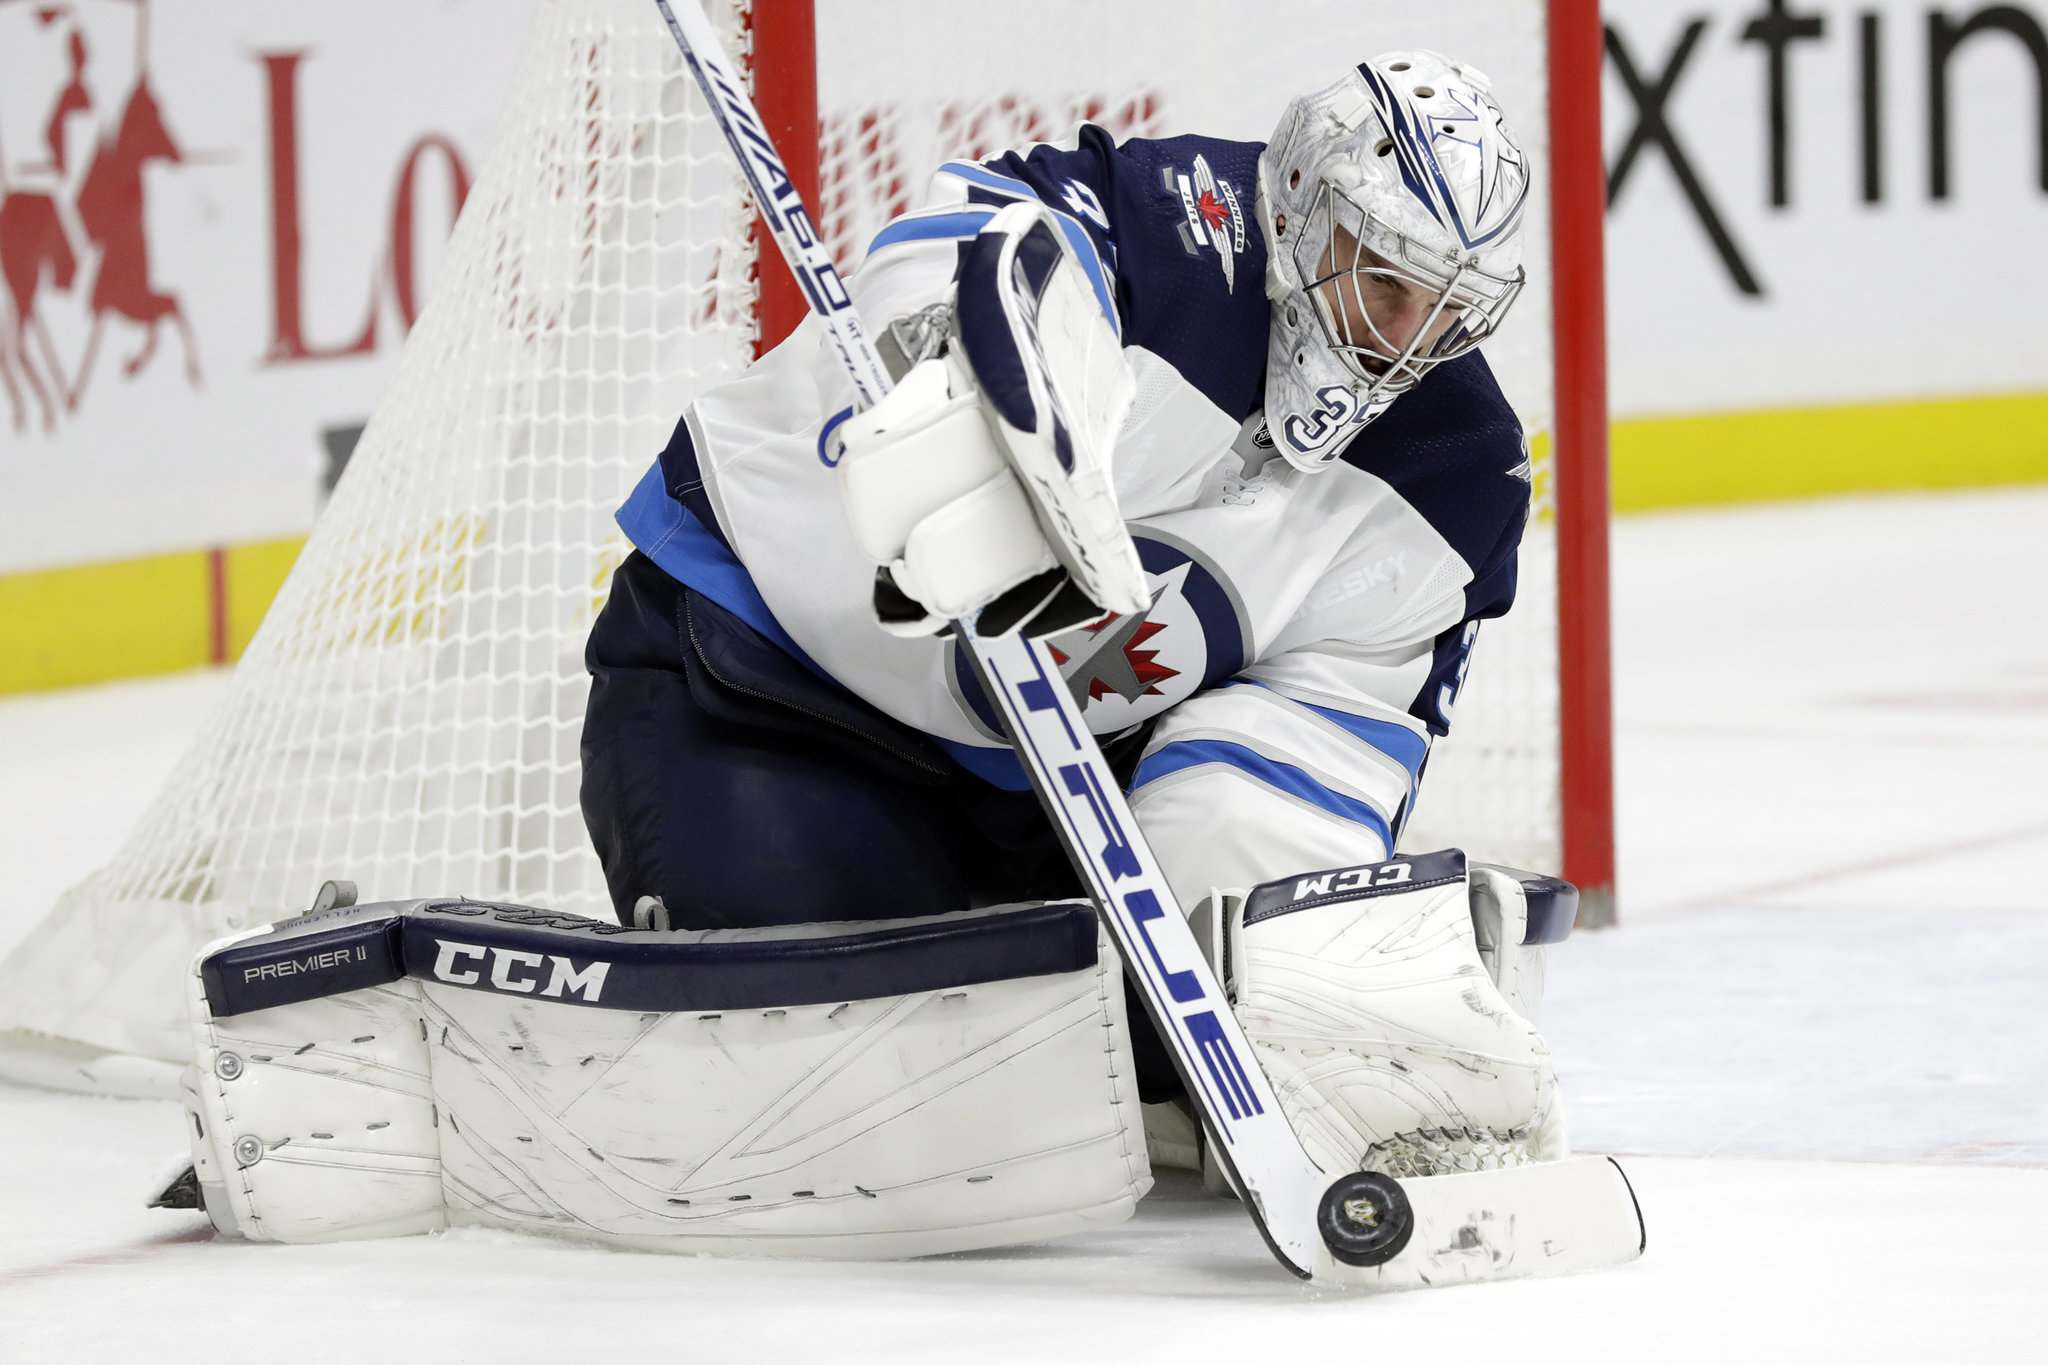 Connor Hellebuyck committed goalie theft larceny on Nov. 1 as the Jets stole a 3-2 win over San Jose despite being outshot 53-19. (Mark Humphrey / Associated Press files)</p>